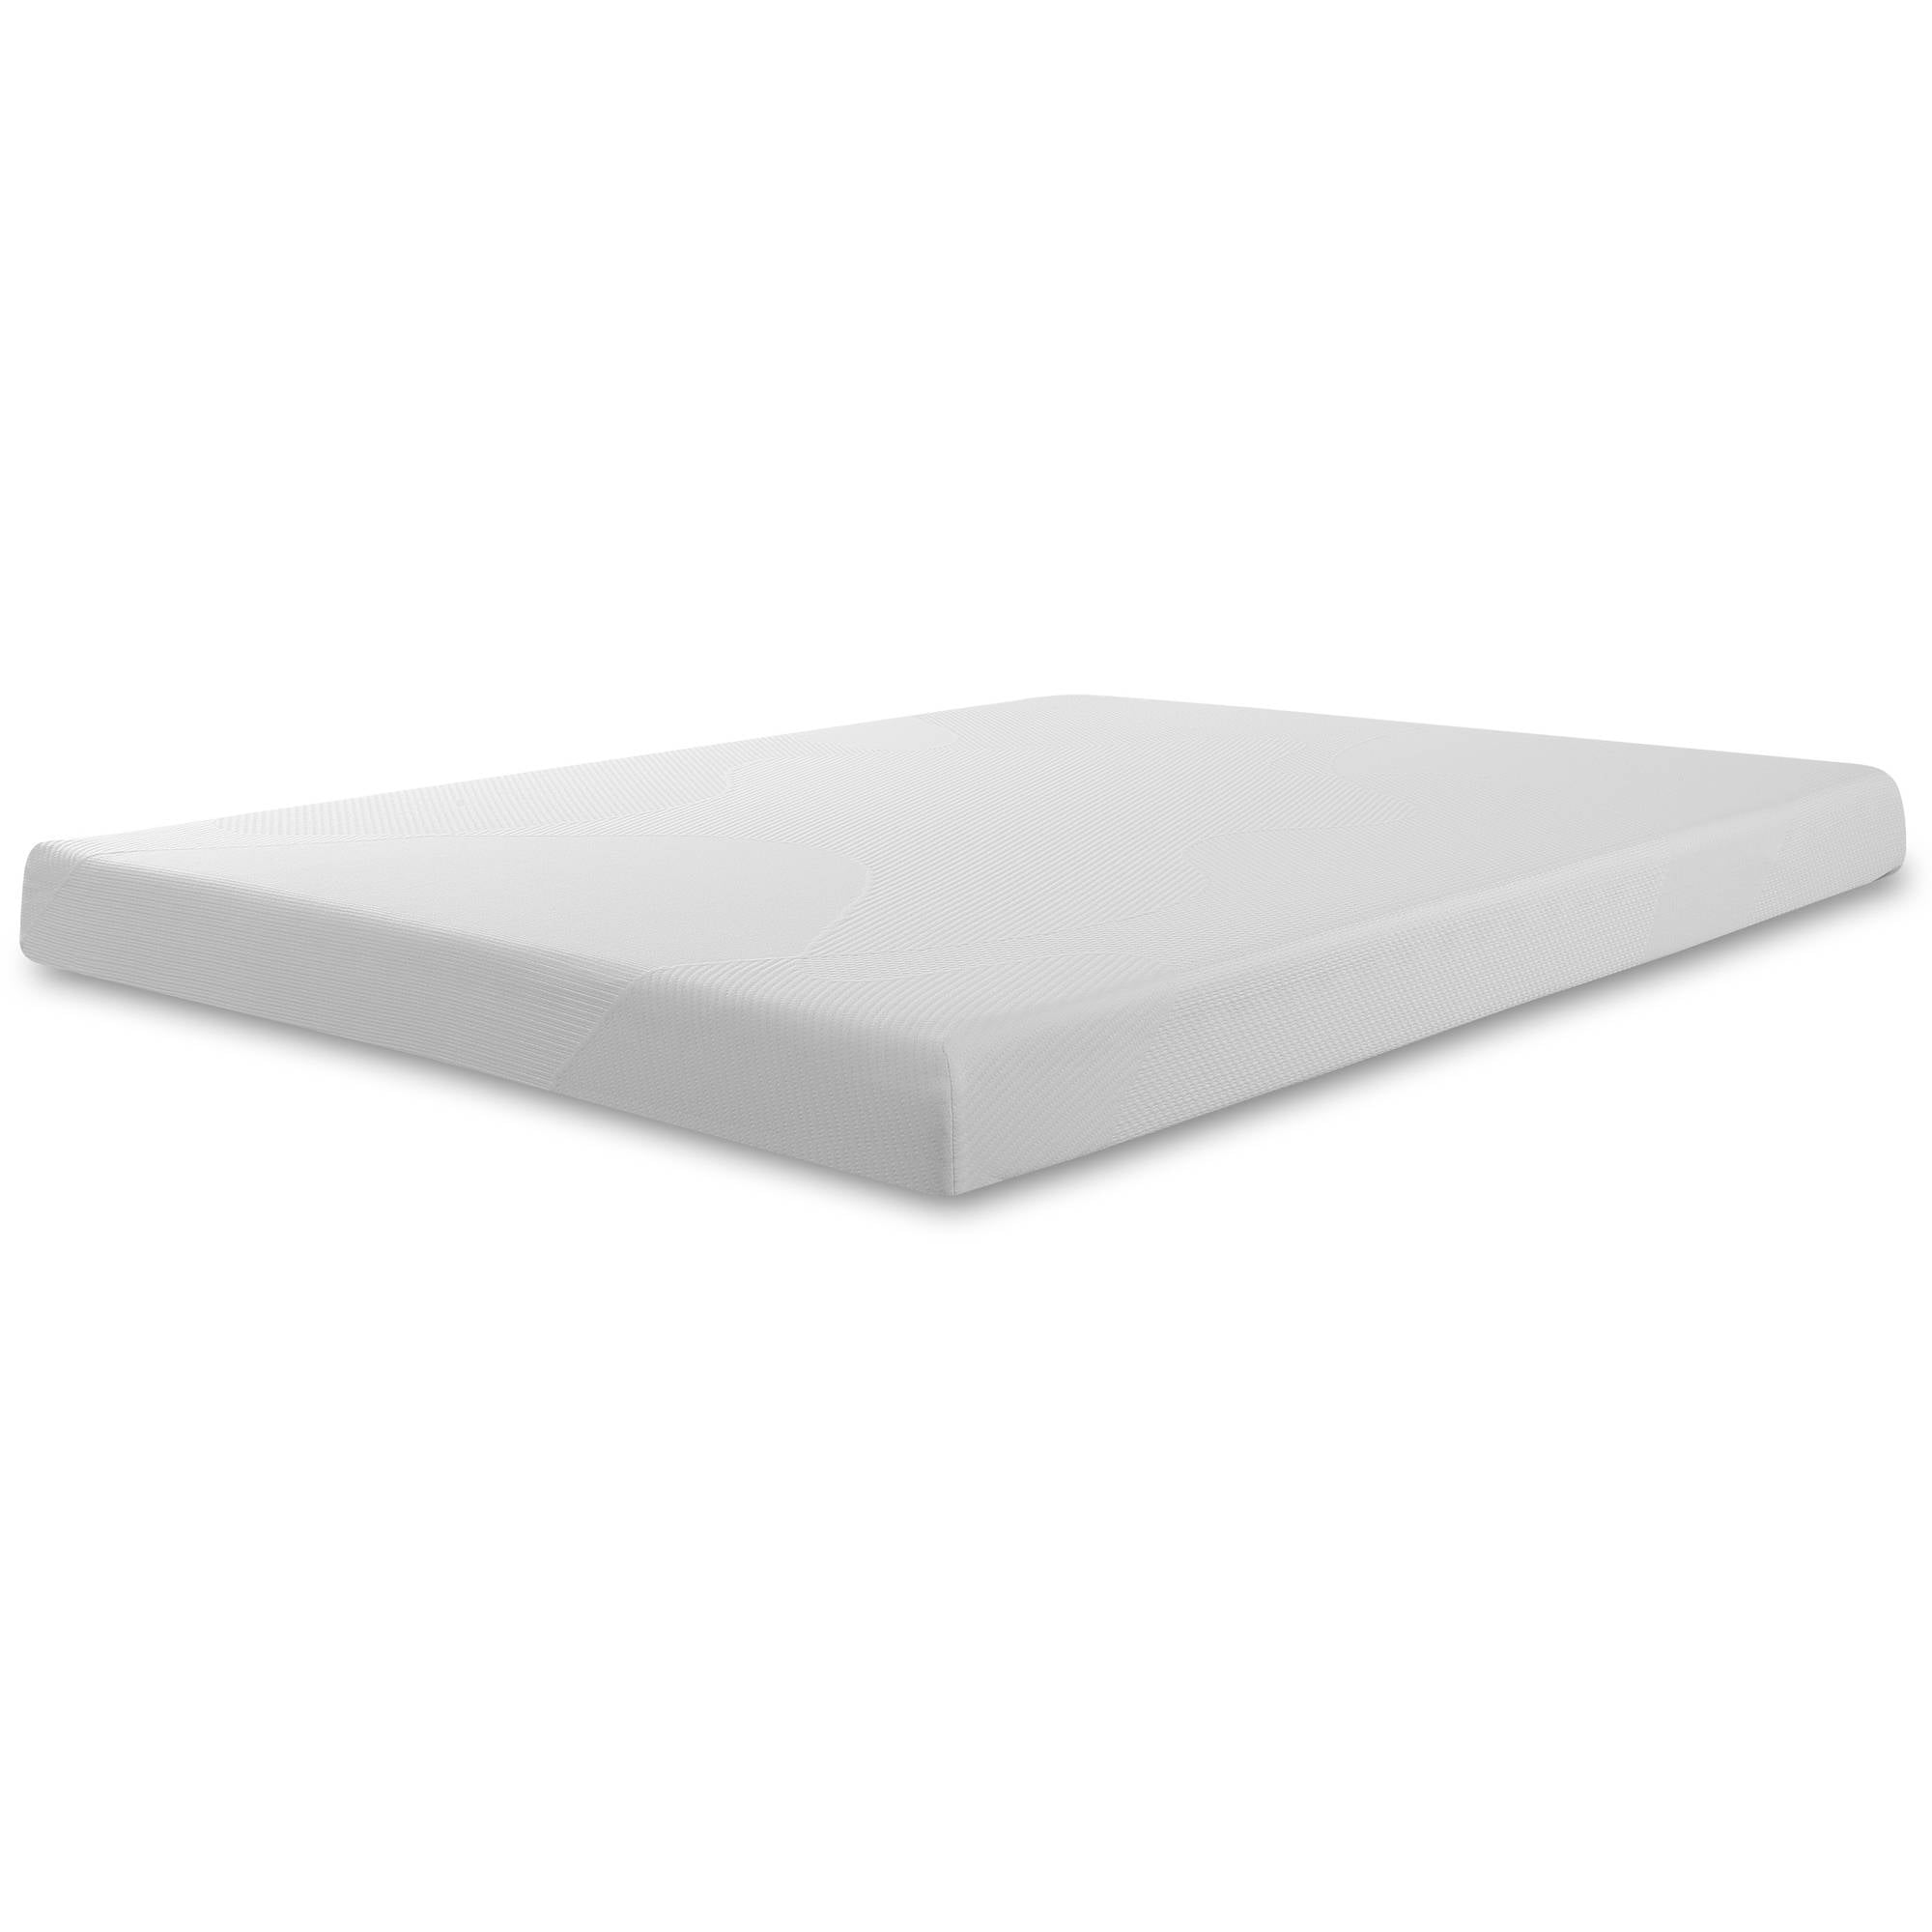 Spa sensation 6 39 39 memory foam mattress xl twin full queen king size firm bedroom ebay Memory foam mattress king size sale